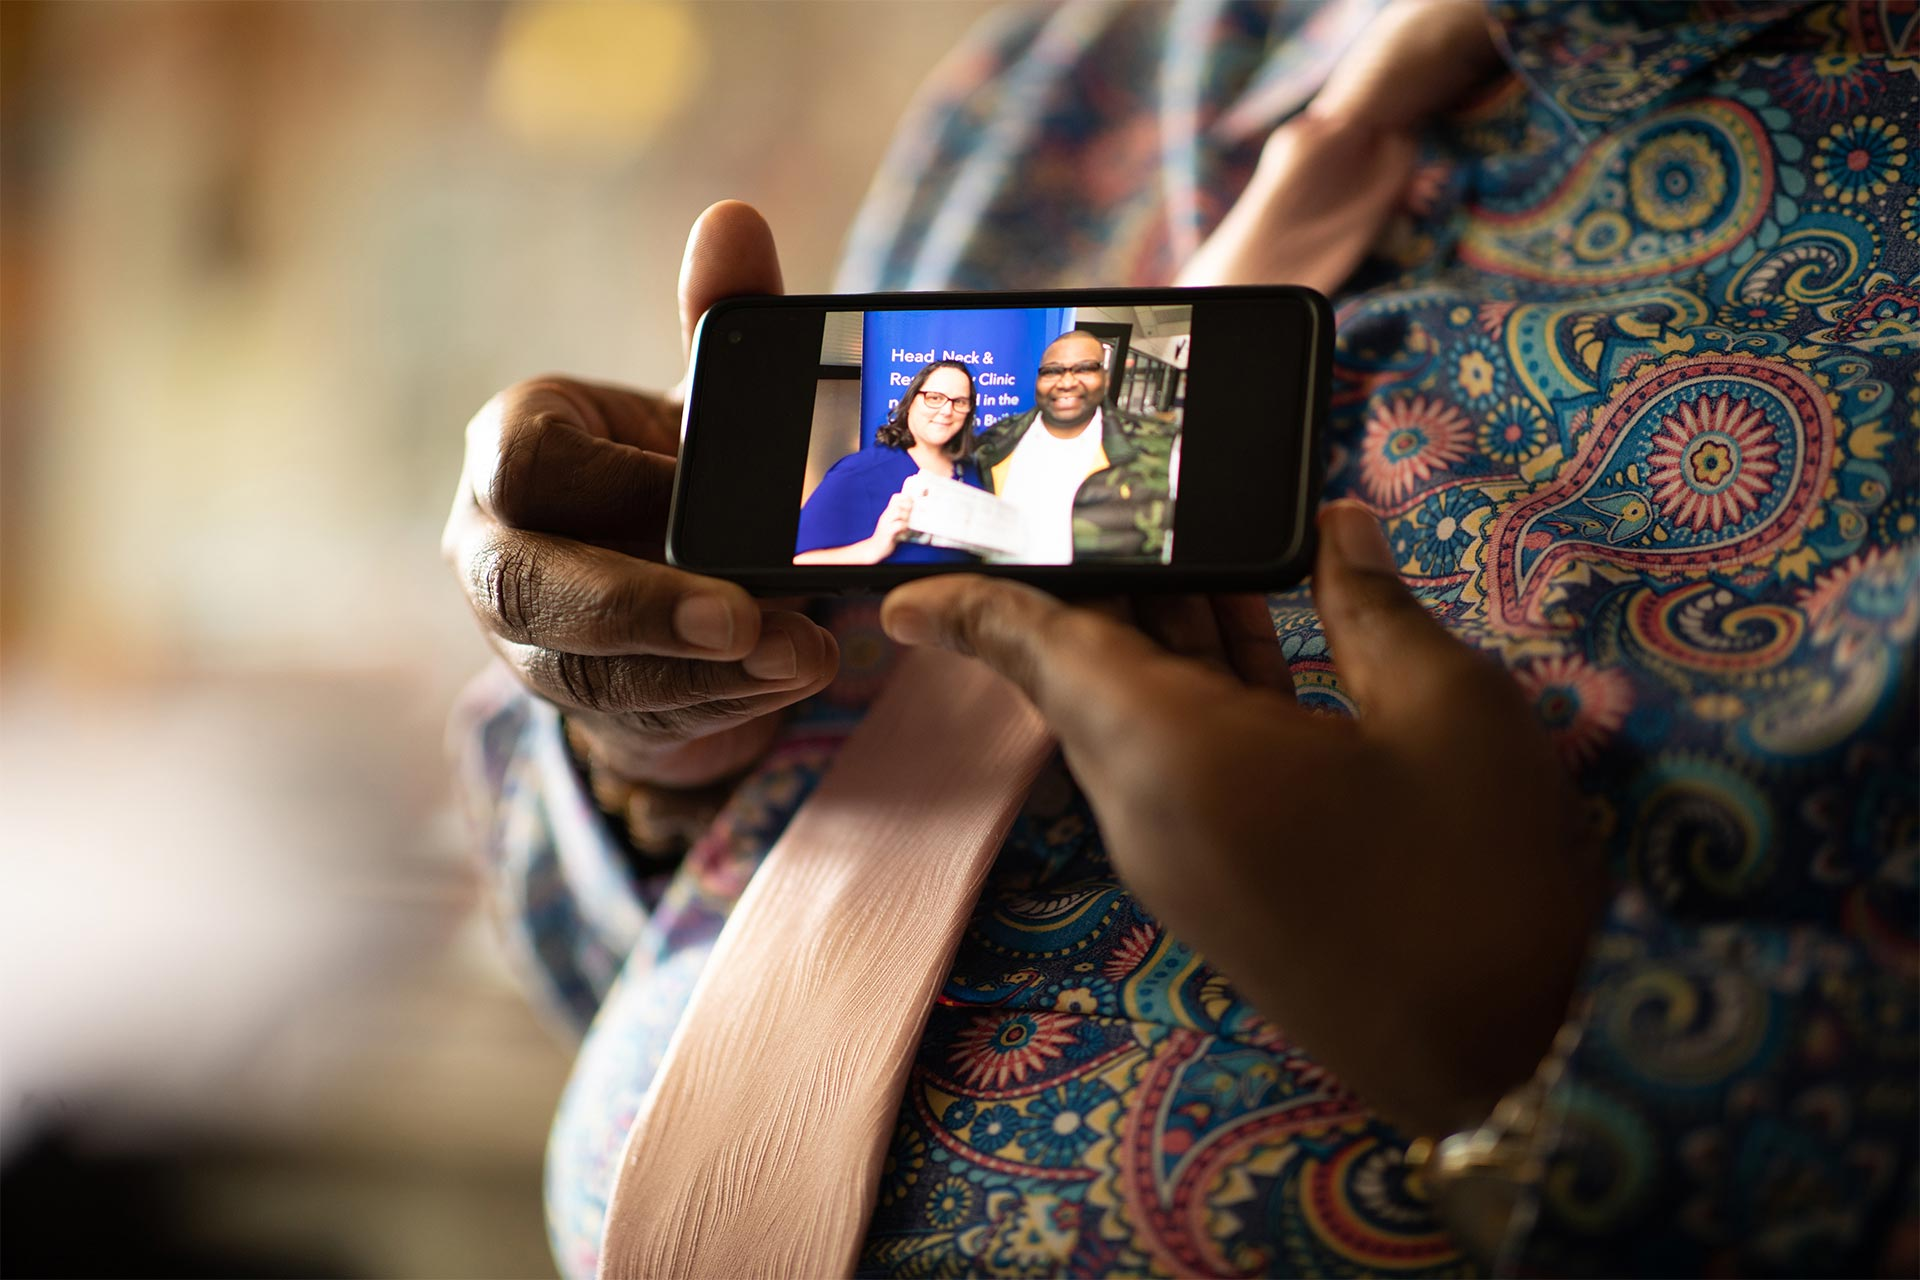 Damon Greene holding a cell phone showing an image of himself and a UK healthcare professional